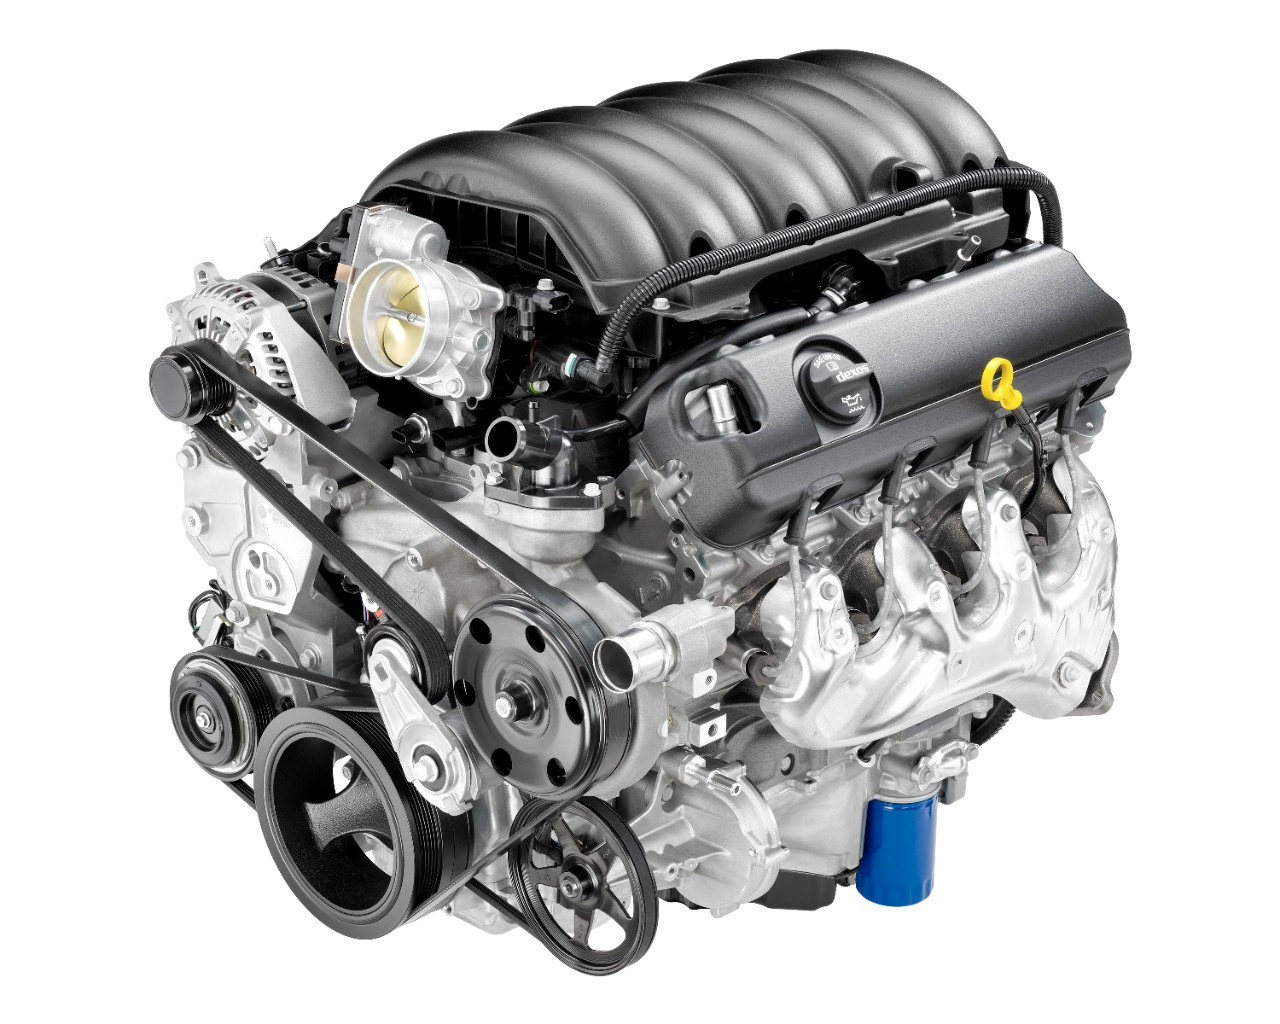 1508671233_56803-gm-5-3l-v8-ecotec3-l83-engine-1